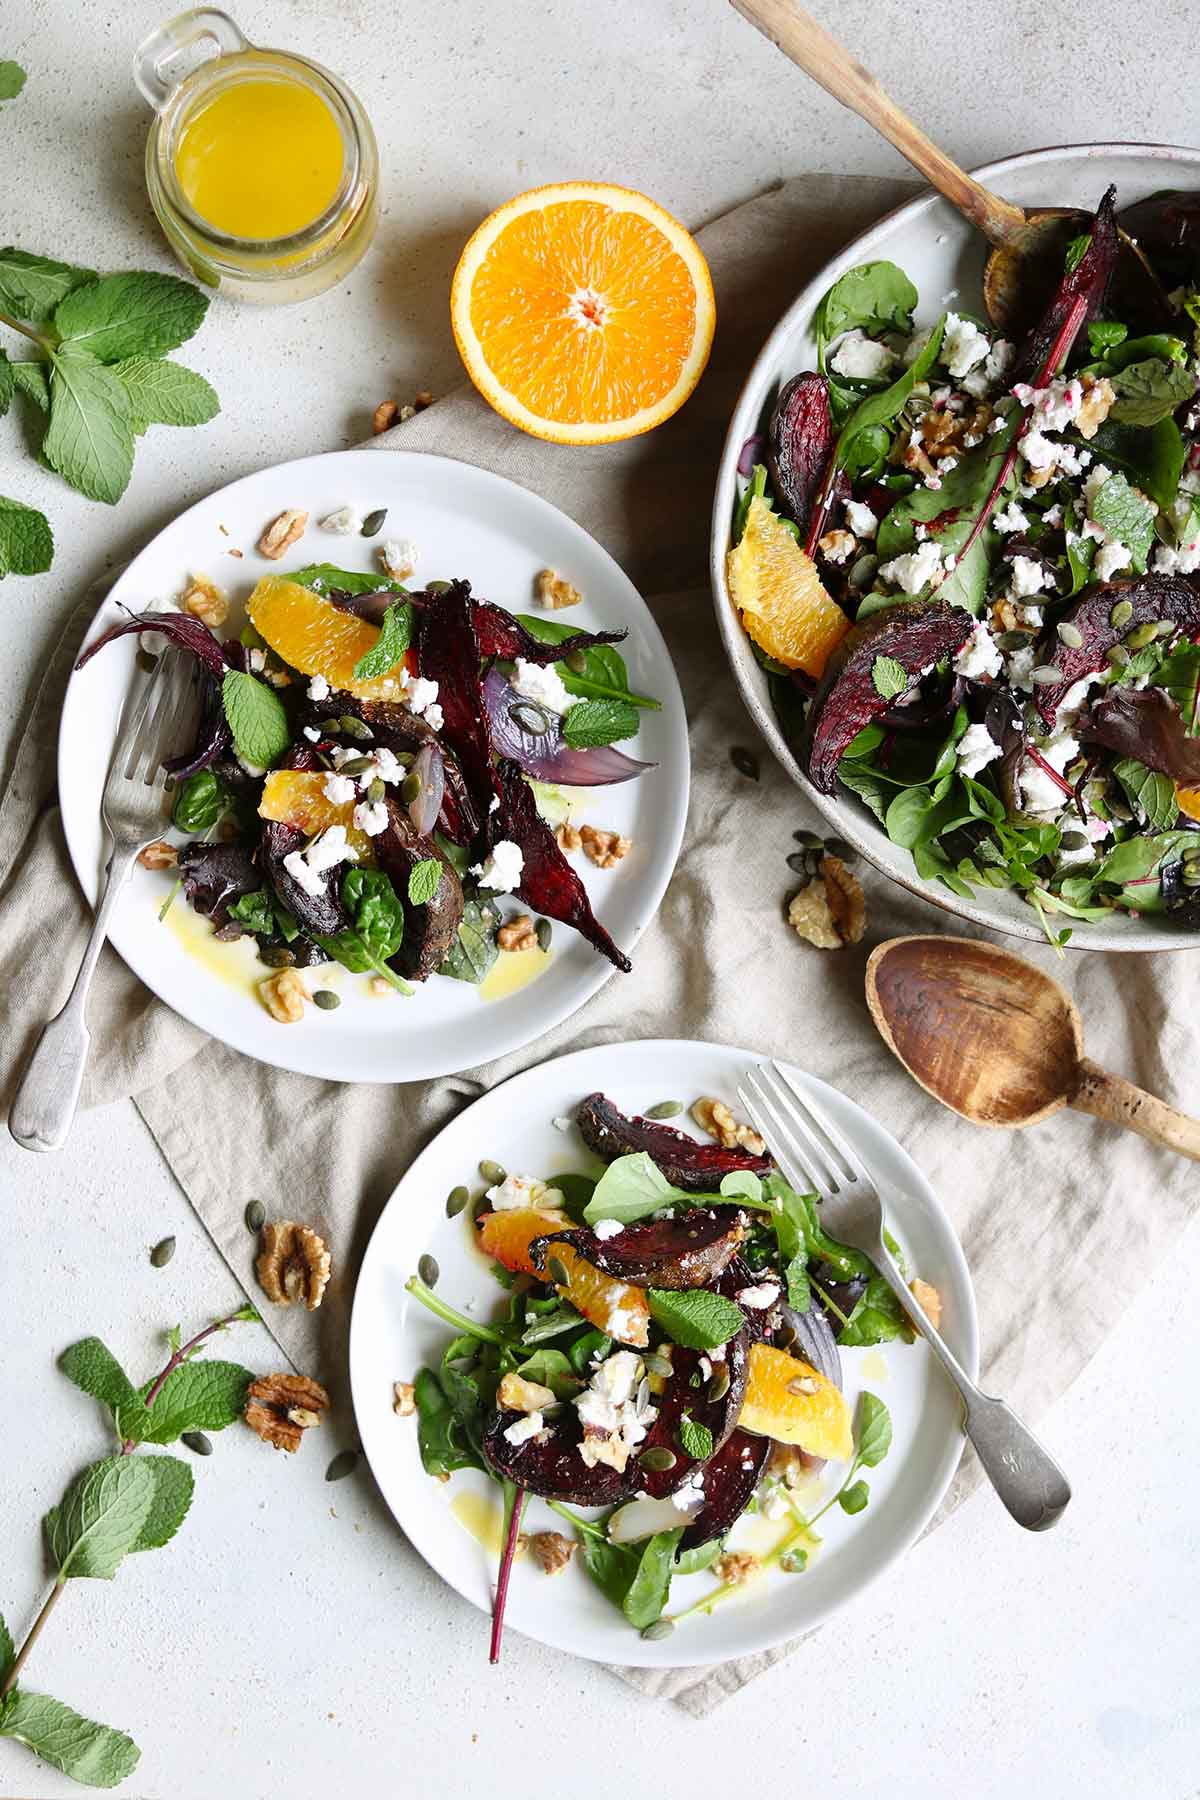 Roasted beetroot salad plated